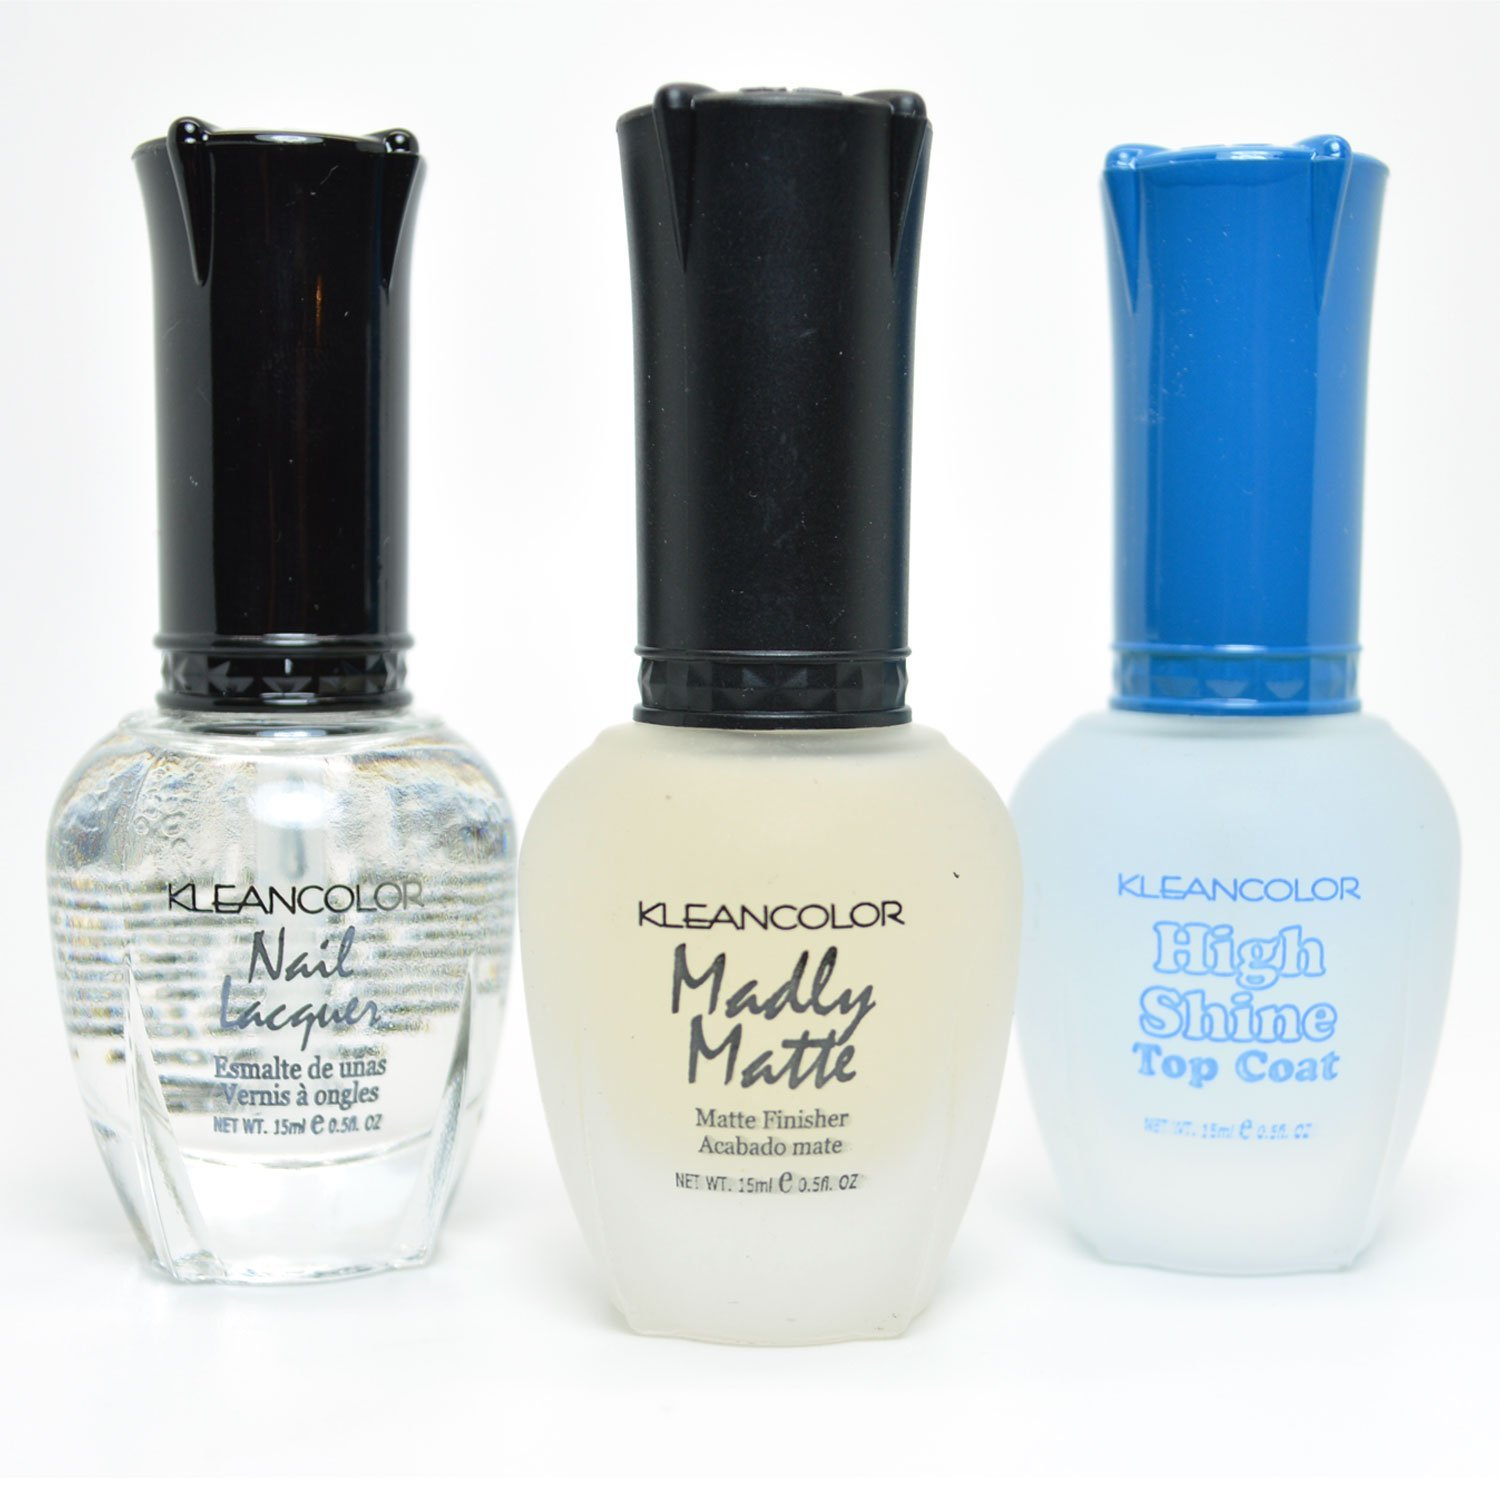 3 Kleancolor Nail Polish Madly Matte High Shine Top Coat Set Lacquer